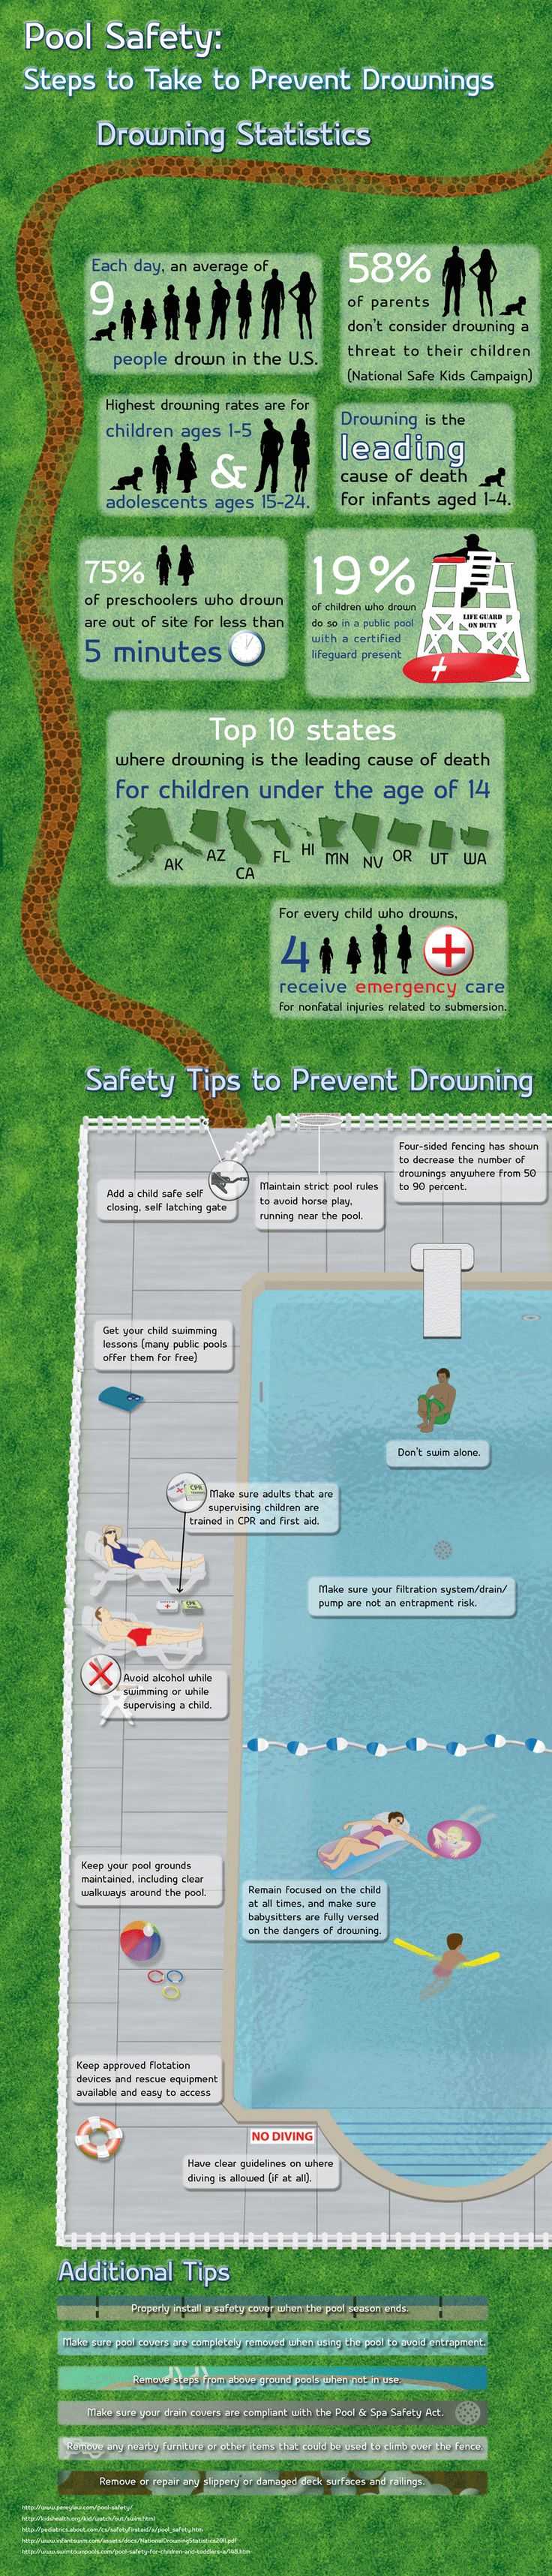 Pics photos swimming pool rules depths sign - Colorado Swim School Teaches Safety To Children Of All Ages Sign Up Now